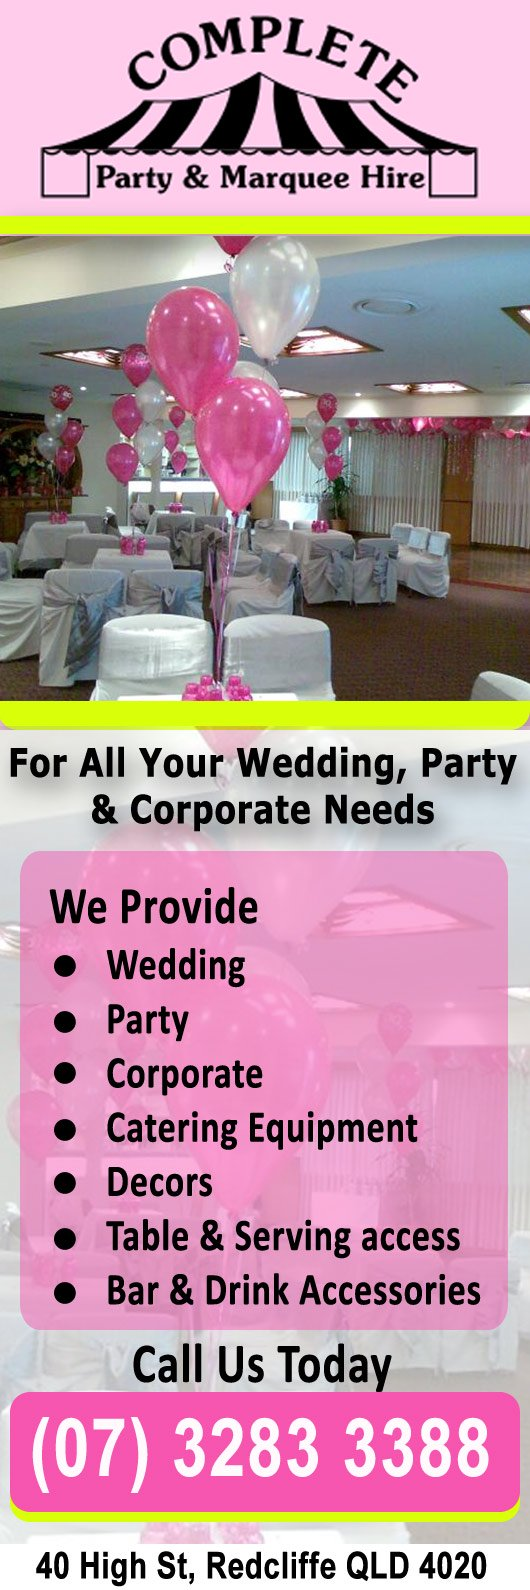 Complete Party Marquee Hire